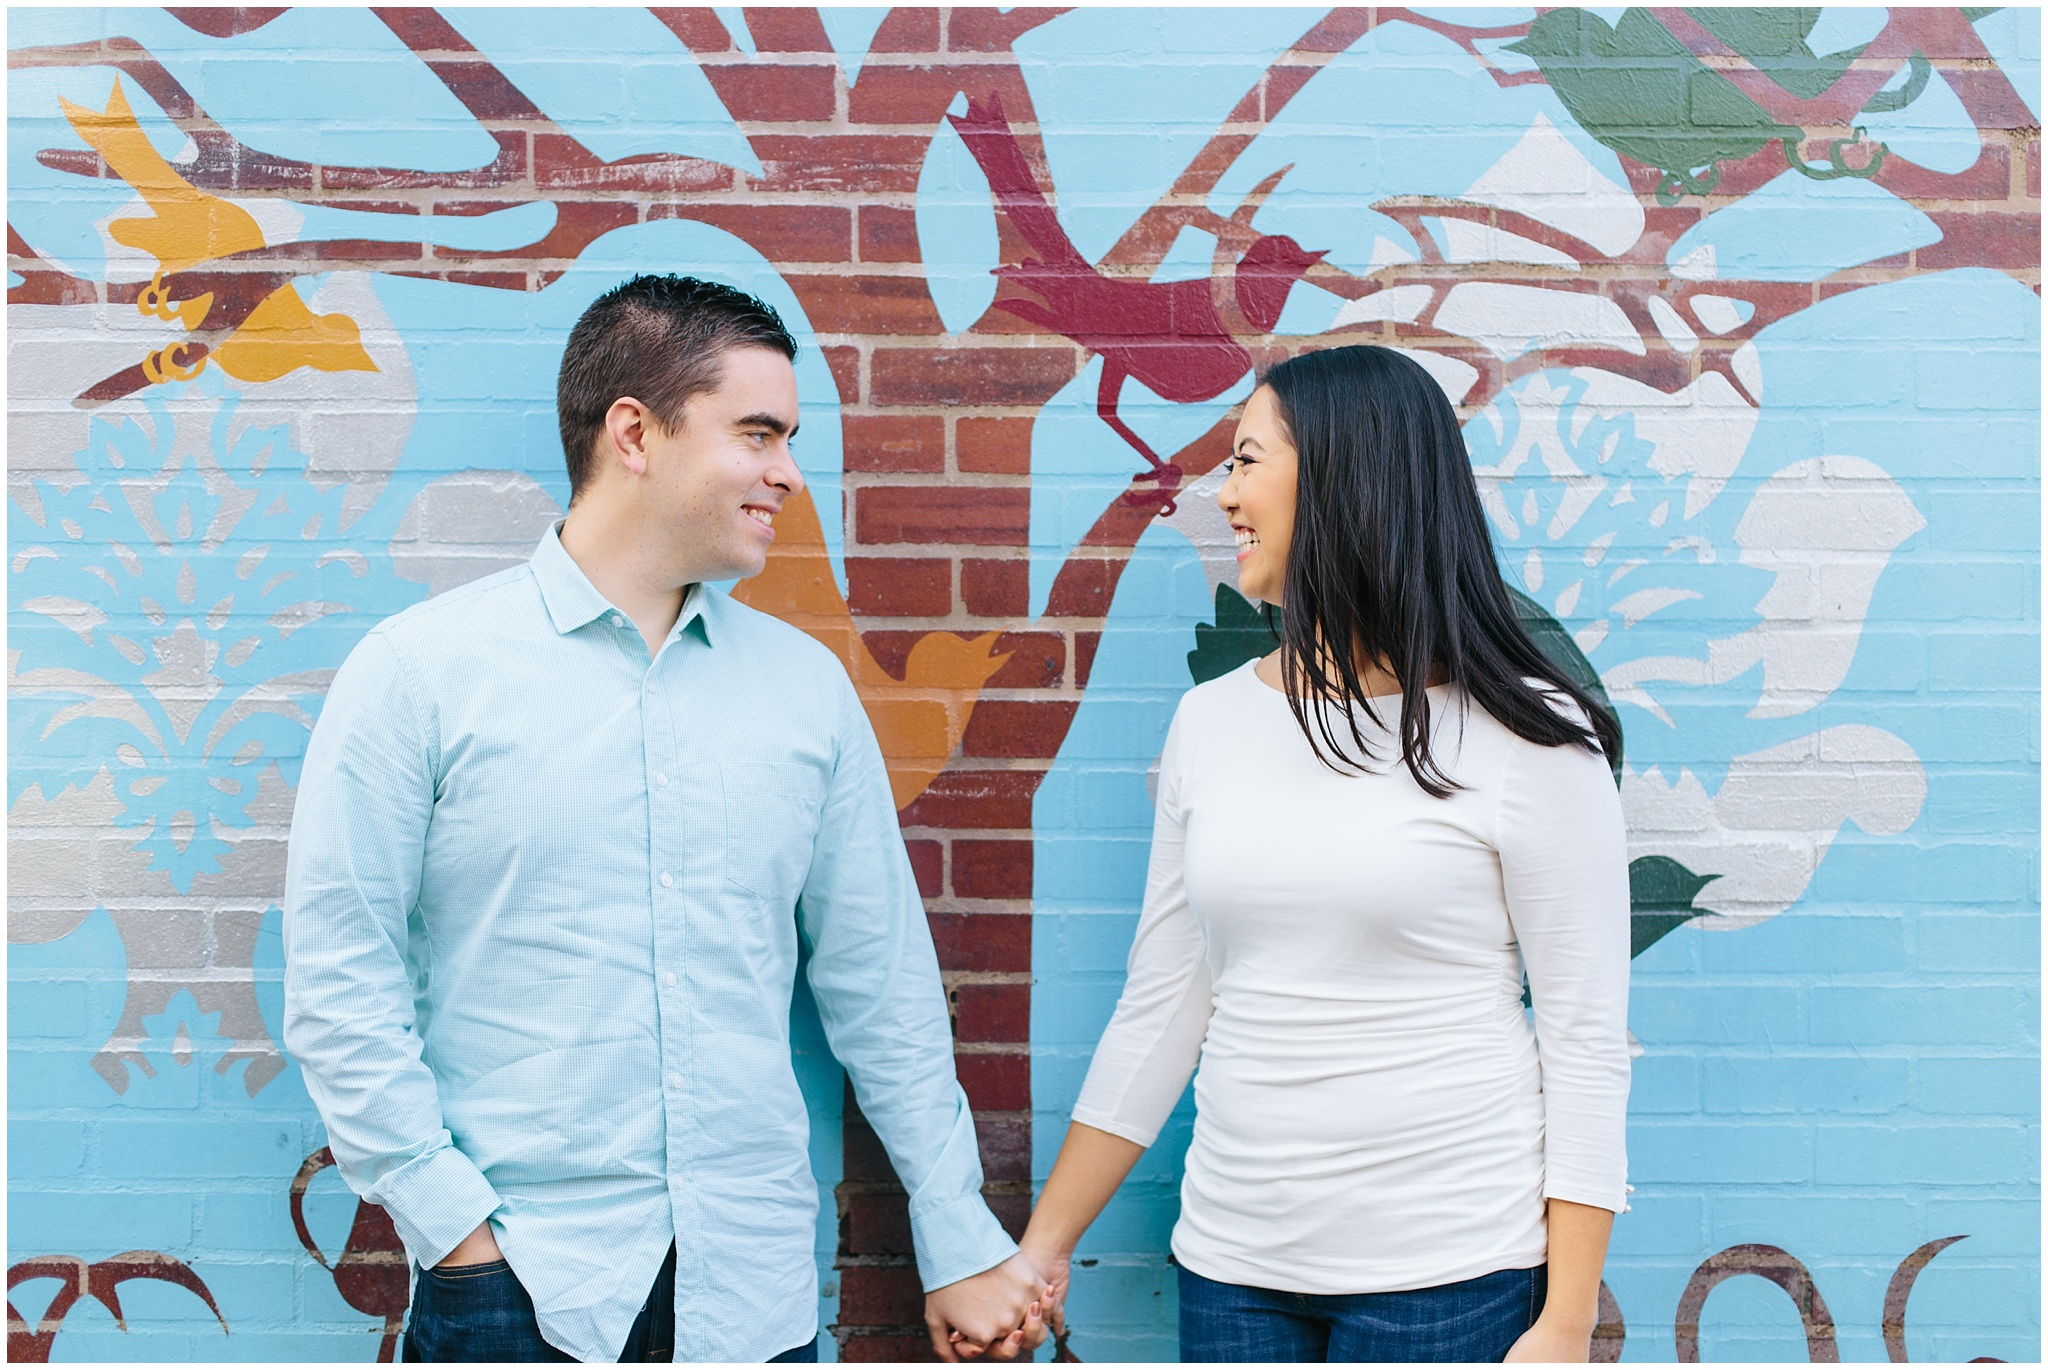 oakland_schenley_park_engagement_session_0015.jpg